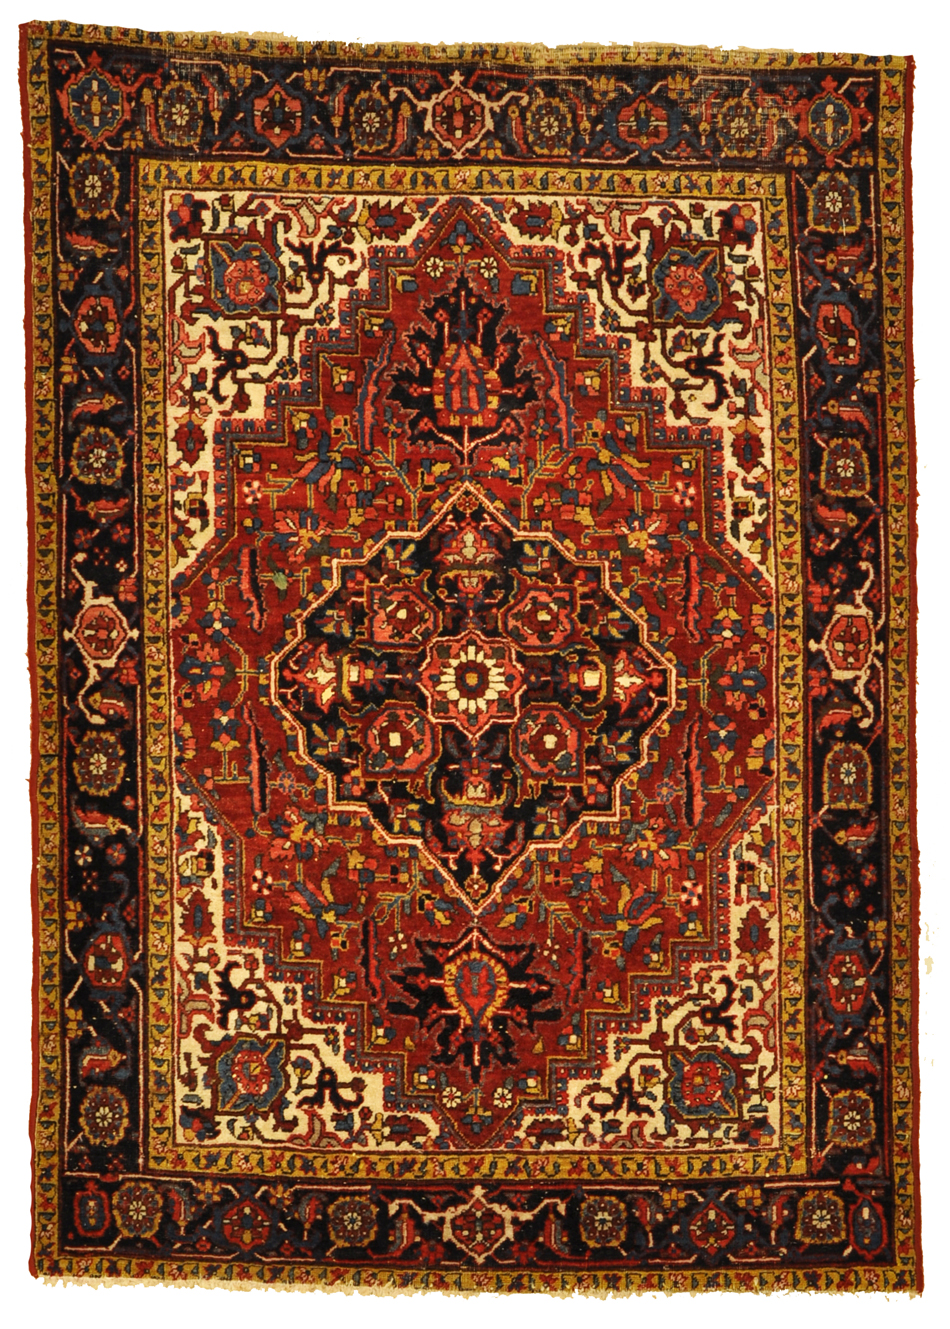 Antique Heriz Rug rugs and more oriental carpet 34567-